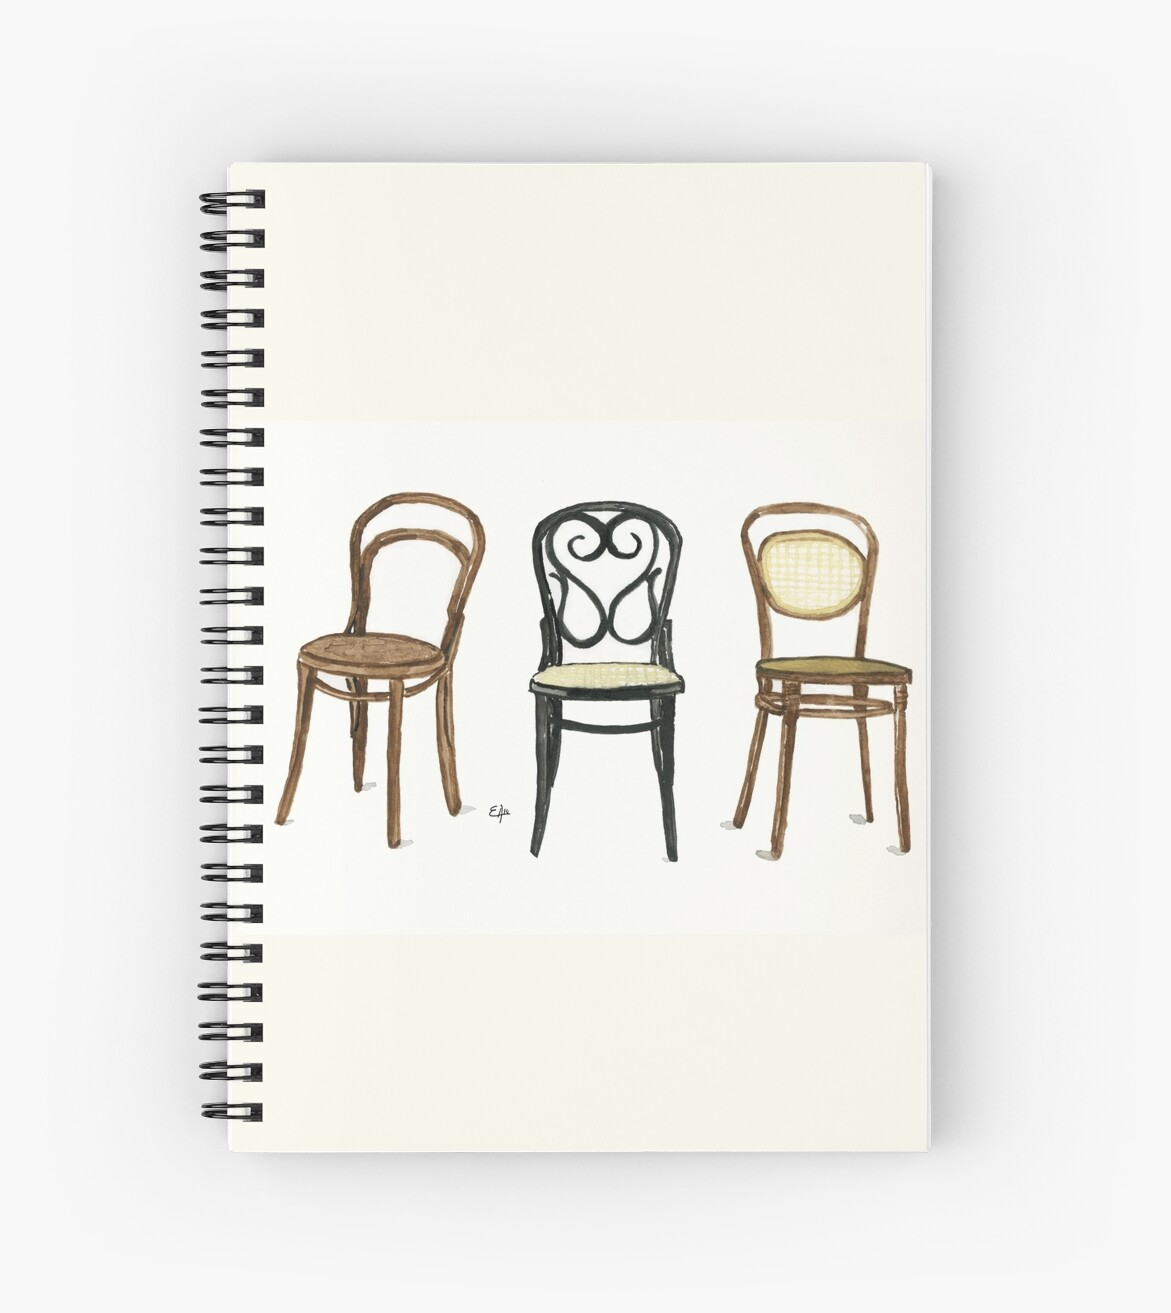 Thonet Jobs Thonet Chairs Watercolor Painting Spiral Notebook By Eugenia Alvarez